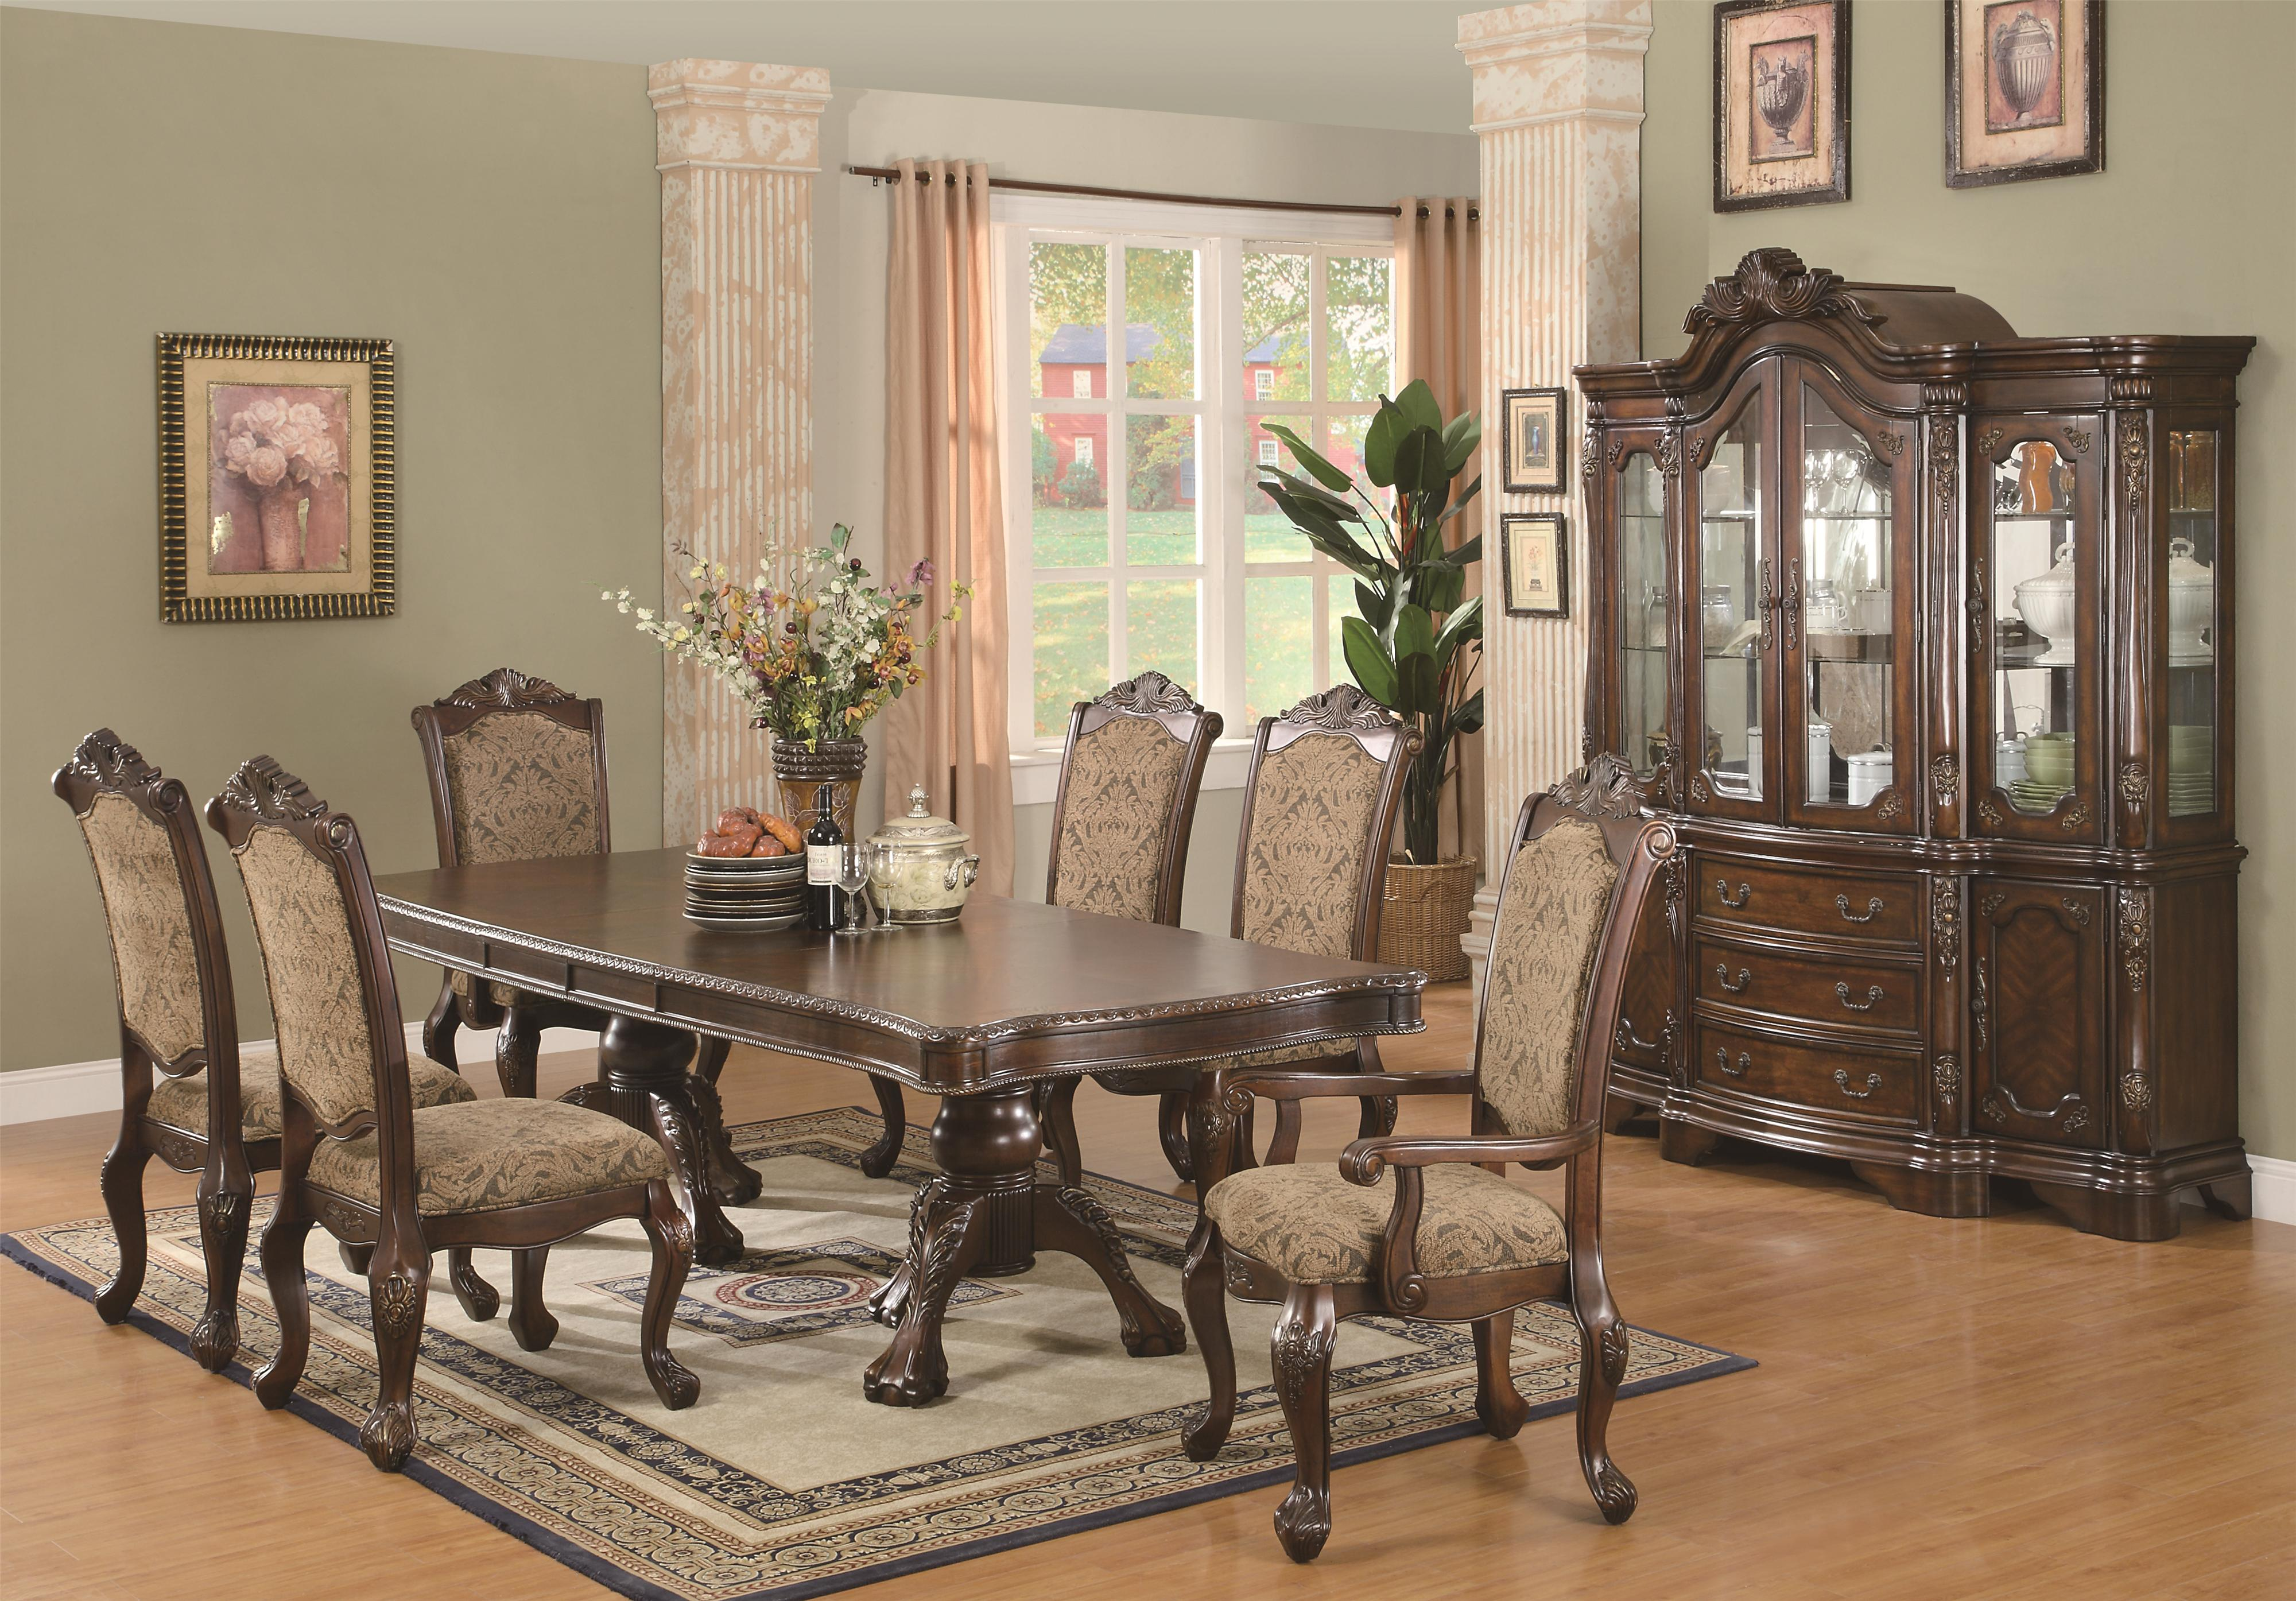 Coaster Andrea Formal Dining Room Group - Item Number: 103110 Dining Room Group 1